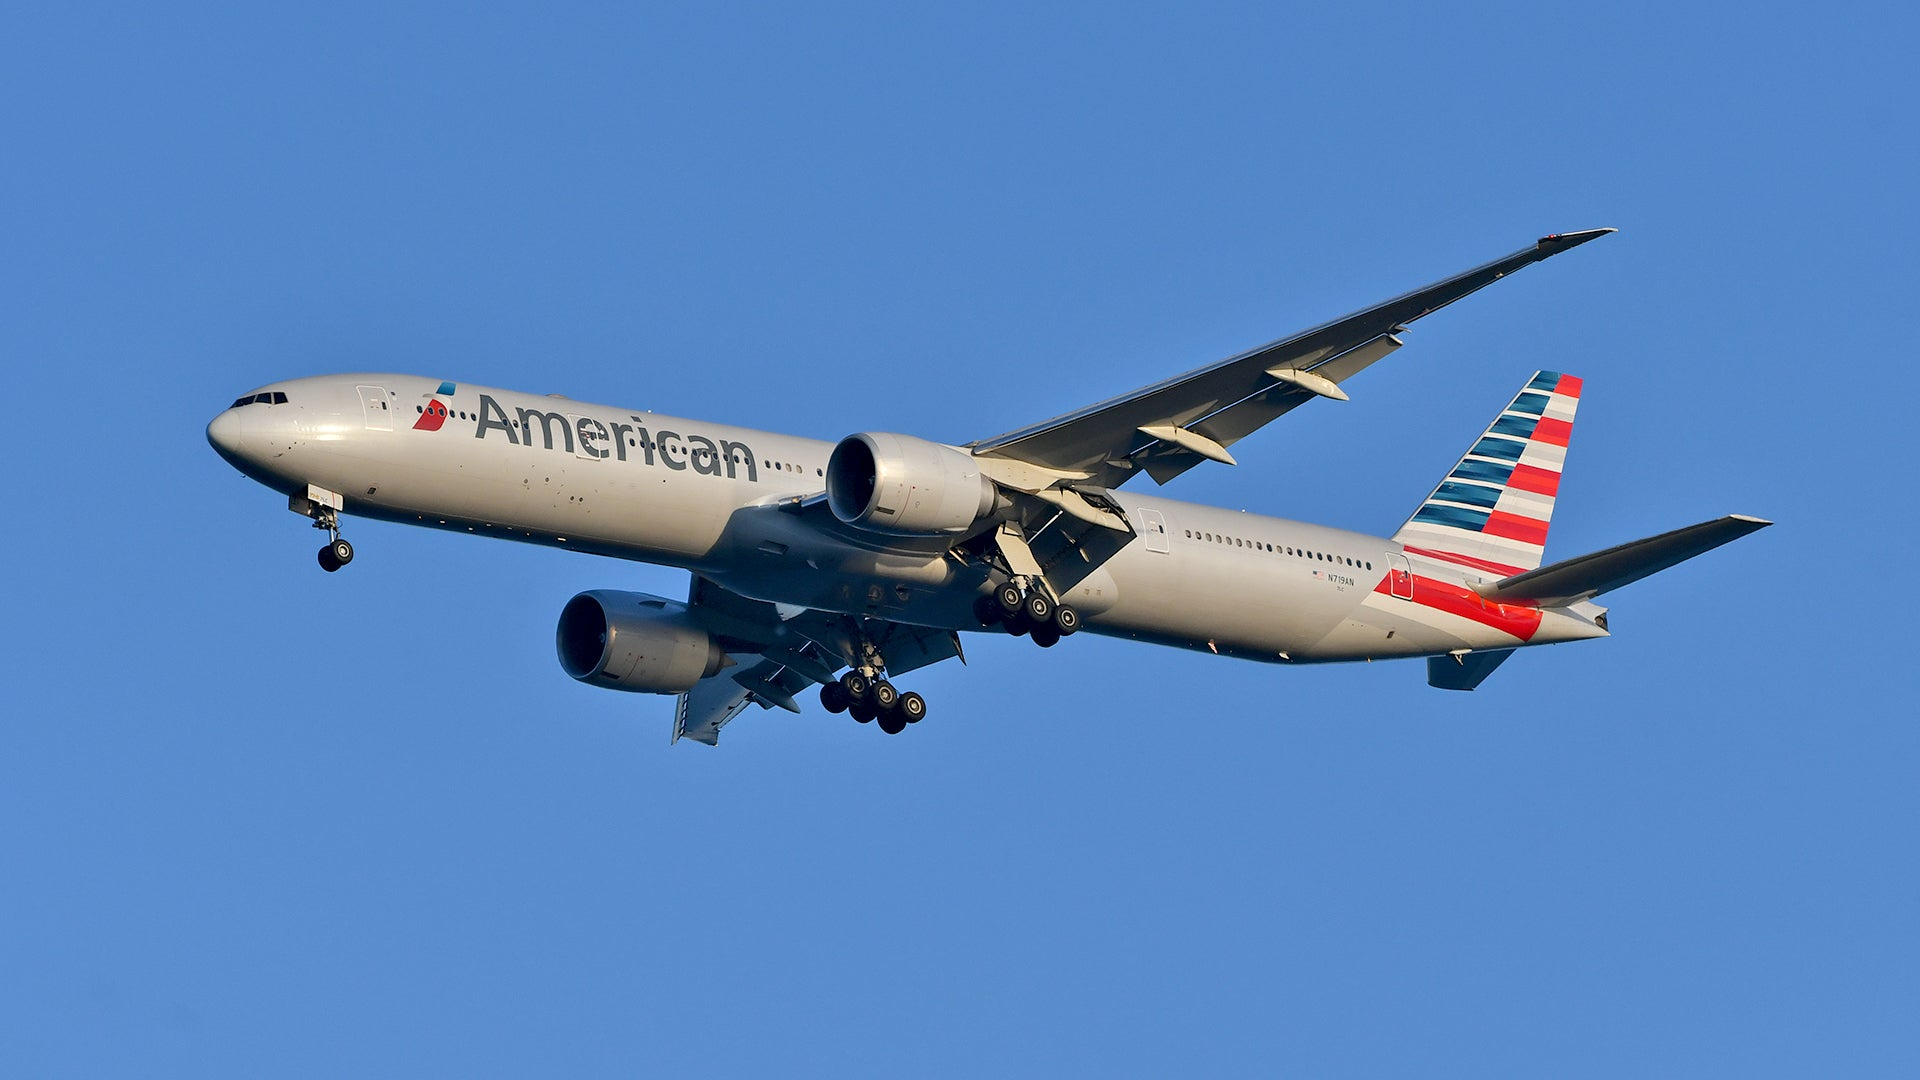 American Airlines warns 20,000 could lose jobs, flight attendant staffing will be very different - The Points Guy